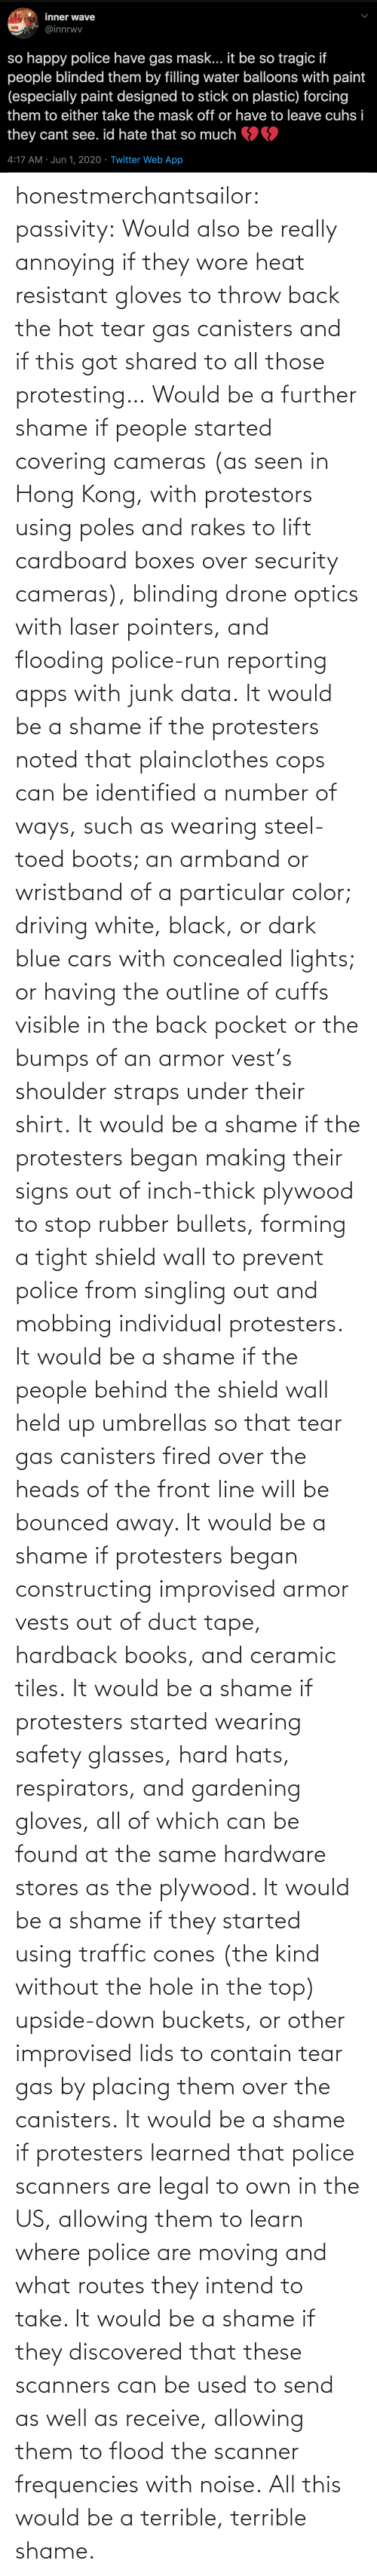 cops: honestmerchantsailor:  passivity: Would also be really annoying if they wore heat resistant gloves to throw back the hot tear gas canisters and if this got shared to all those protesting… Would be a further shame if people started covering cameras (as seen in Hong Kong, with protestors using poles and rakes to lift cardboard boxes over security cameras), blinding drone optics with laser pointers, and flooding police-run reporting apps with junk data. It would be a shame if the protesters noted that plainclothes cops can be identified a number of ways, such as wearing steel-toed boots; an armband or wristband of a particular color; driving white, black, or dark blue cars with concealed lights; or having the outline of cuffs visible in the back pocket or the bumps of an armor vest's shoulder straps under their shirt. It would be a shame if the protesters began making their signs out of inch-thick plywood to stop rubber bullets, forming a tight shield wall to prevent police from singling out and mobbing individual protesters. It would be a shame if the people behind the shield wall held up umbrellas so that tear gas canisters fired over the heads of the front line will be bounced away. It would be a shame if protesters began constructing improvised armor vests out of duct tape, hardback books, and ceramic tiles. It would be a shame if protesters started wearing safety glasses, hard hats, respirators, and gardening gloves, all of which can be found at the same hardware stores as the plywood. It would be a shame if they started using traffic cones (the kind without the hole in the top) upside-down buckets, or other improvised lids to contain tear gas by placing them over the canisters. It would be a shame if protesters learned that police scanners are legal to own in the US, allowing them to learn where police are moving and what routes they intend to take. It would be a shame if they discovered that these scanners can be used to send as well as receive, allowing them to flood the scanner frequencies with noise. All this would be a terrible, terrible shame.